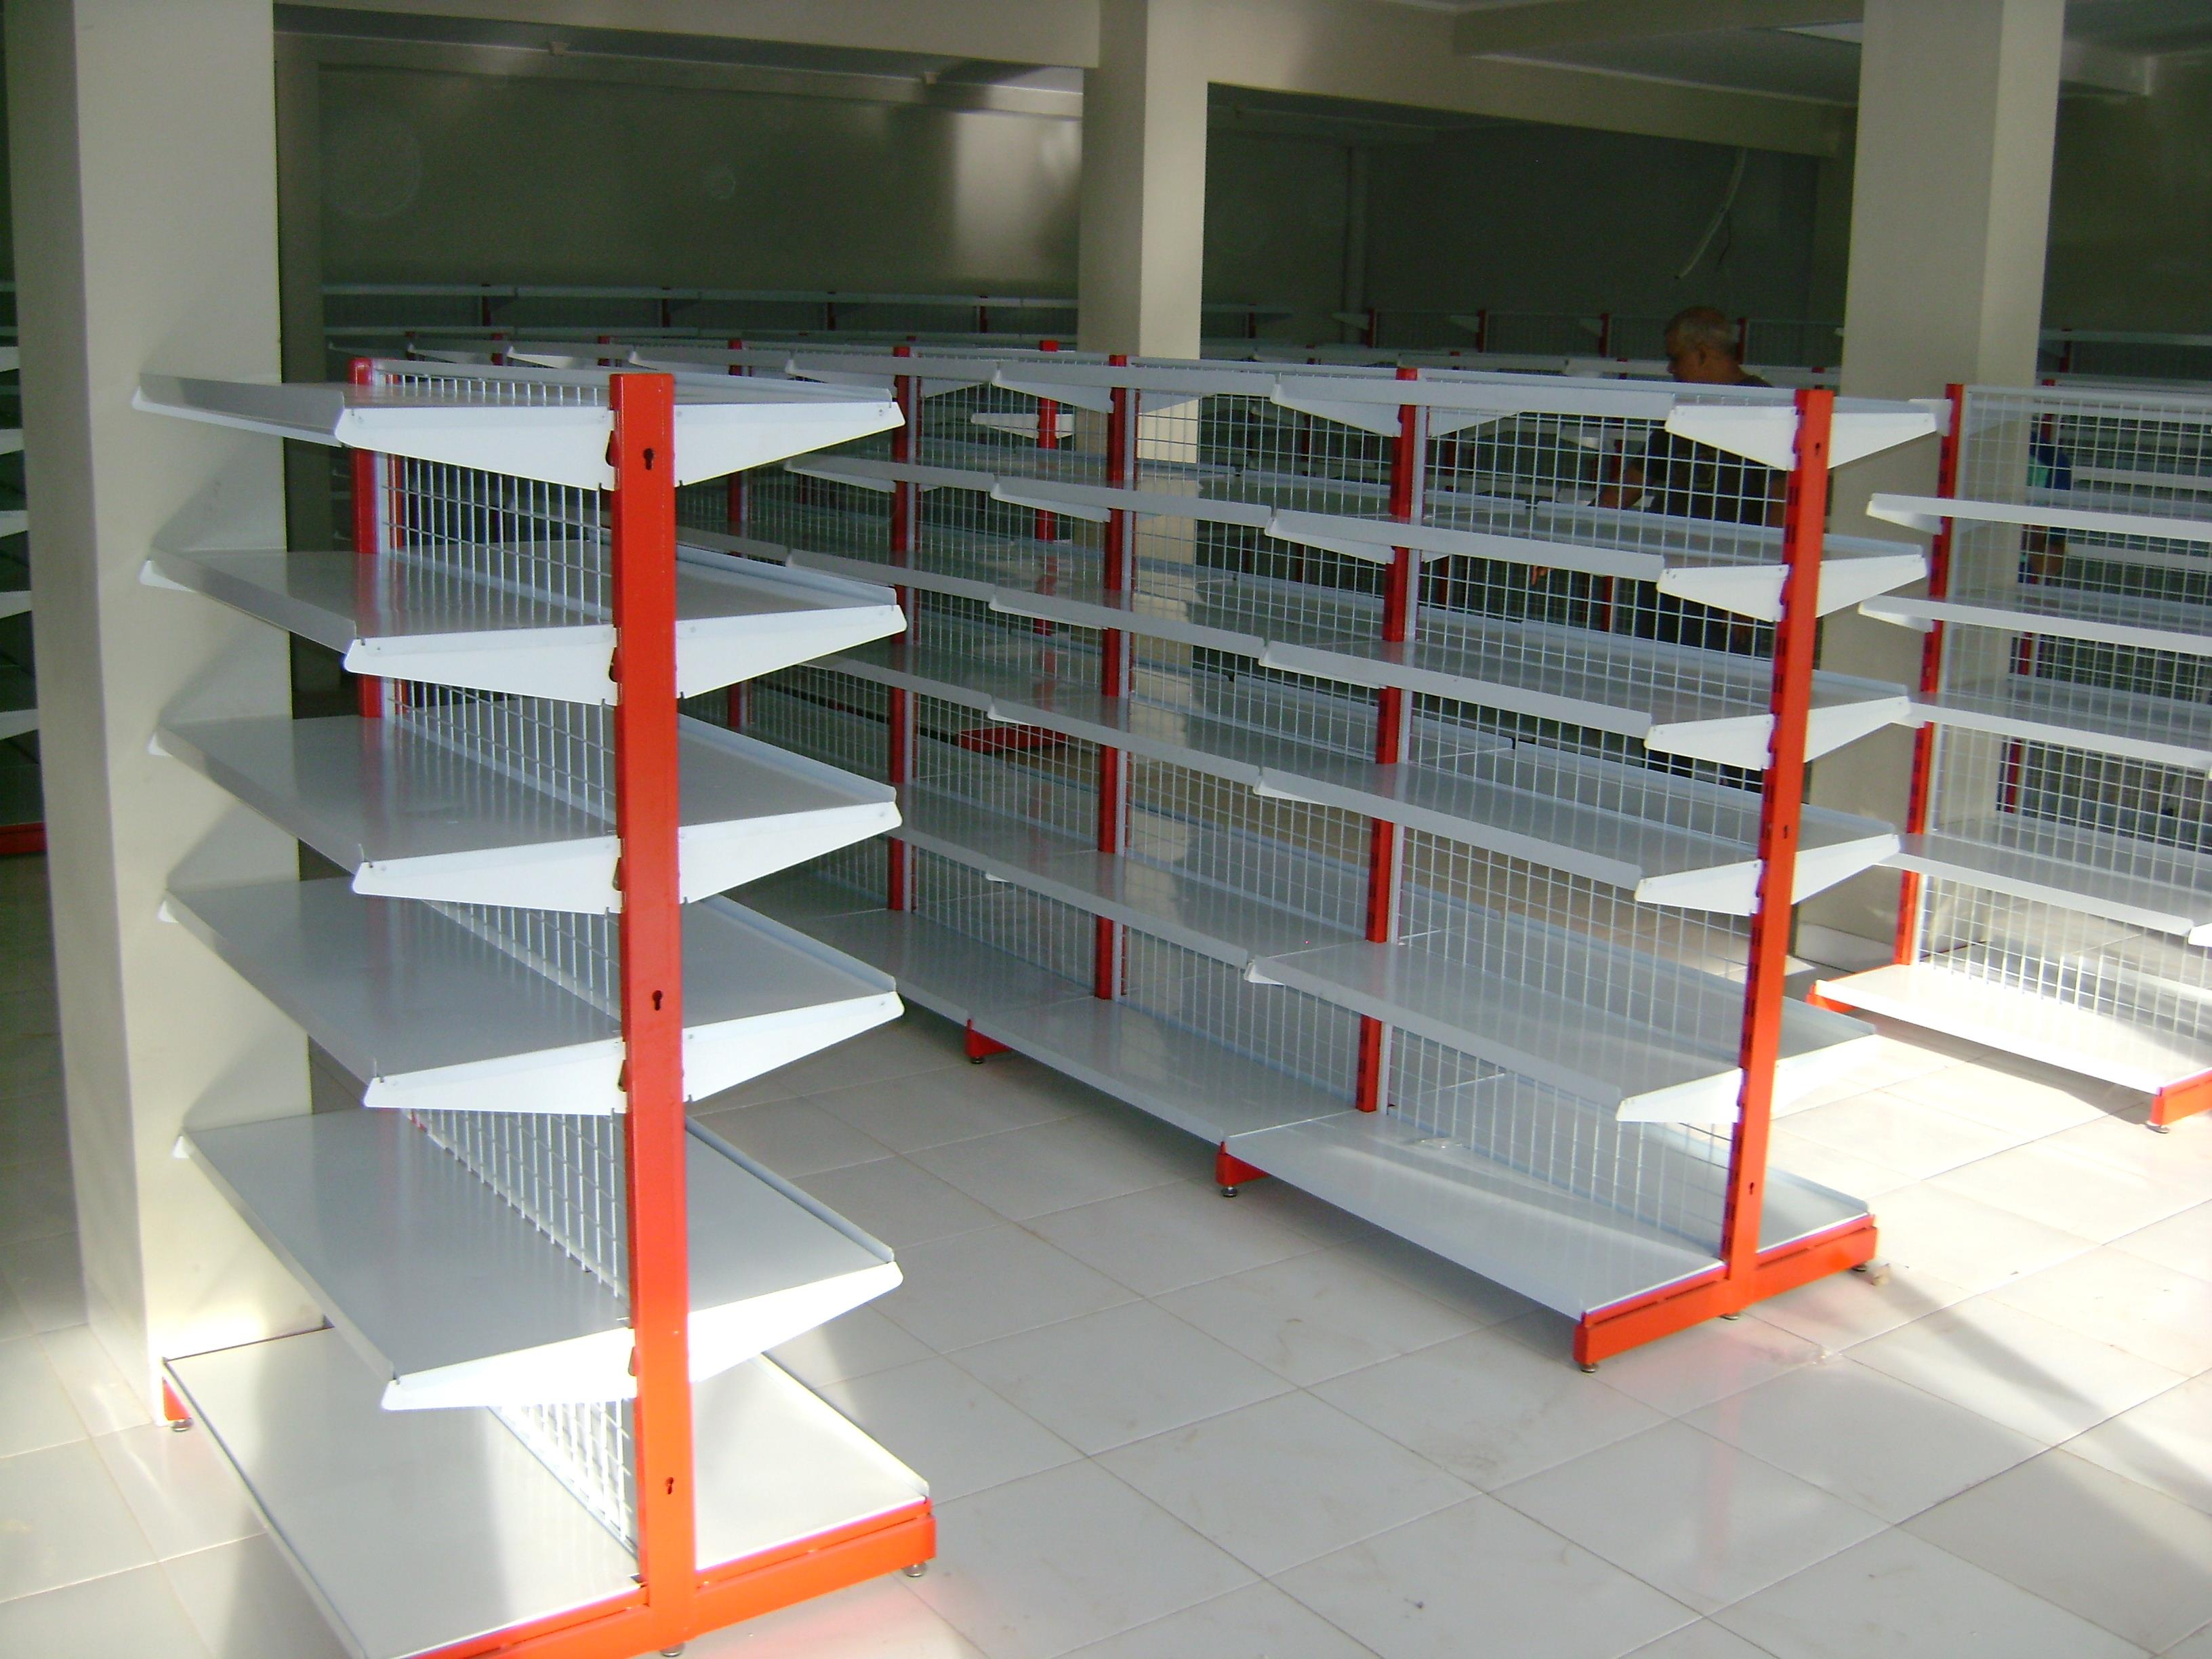 Sell Gondola Rack Minimarket Indo from Indonesia by Dunia